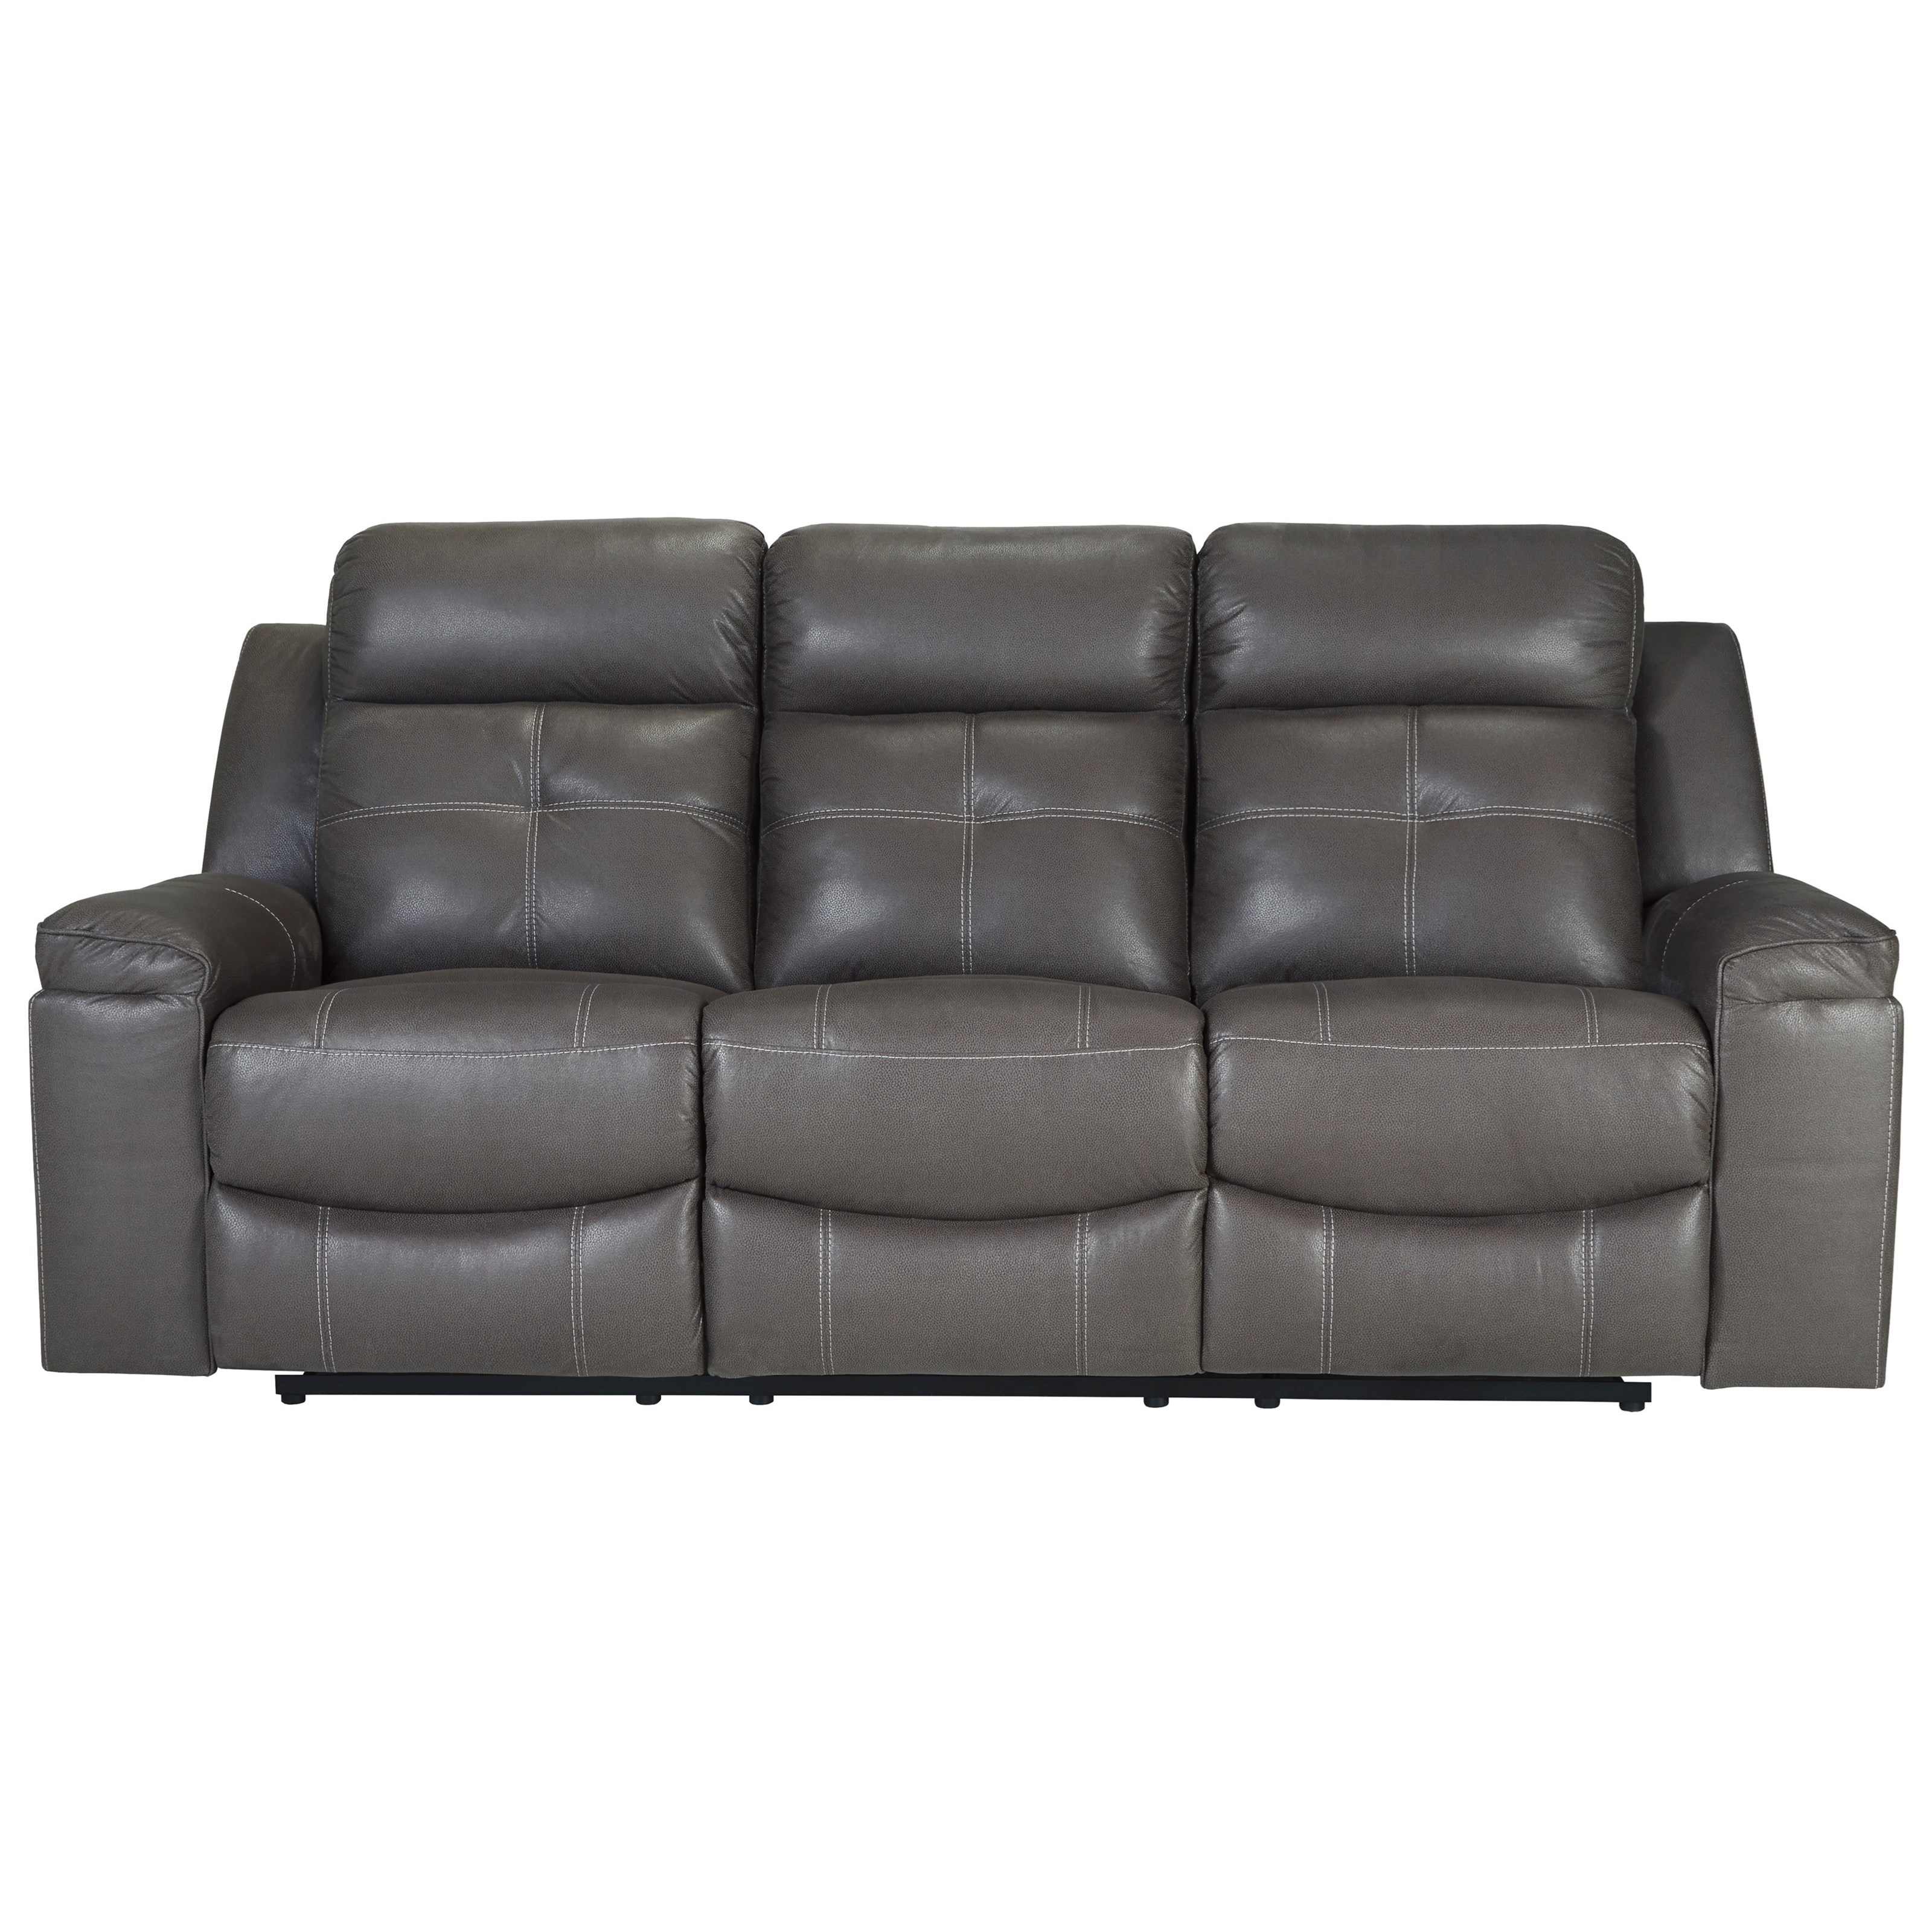 Signature Design by Ashley Jesolo Reclining Sofa - Item Number: 8670588